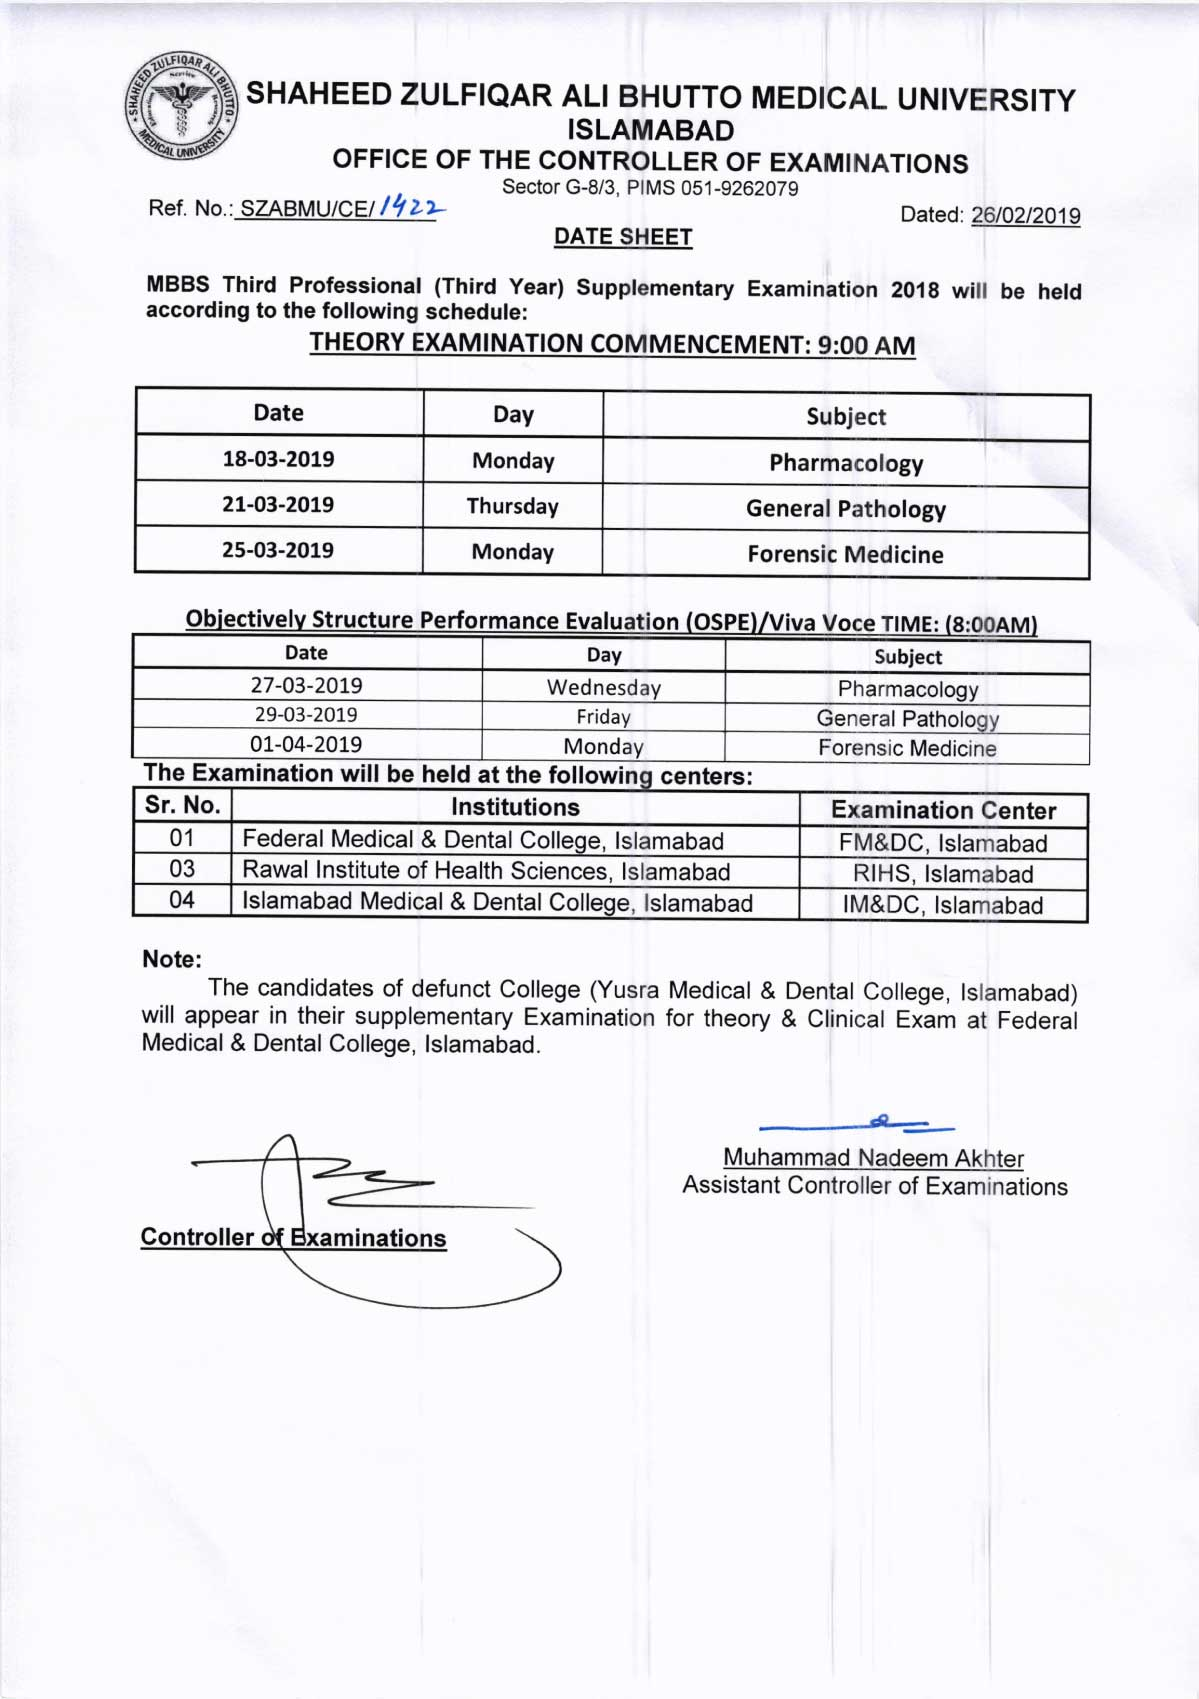 Date Sheets of MBBS 1st, 2nd, 3rd & 4th Professionals Supplementary Exam 2018